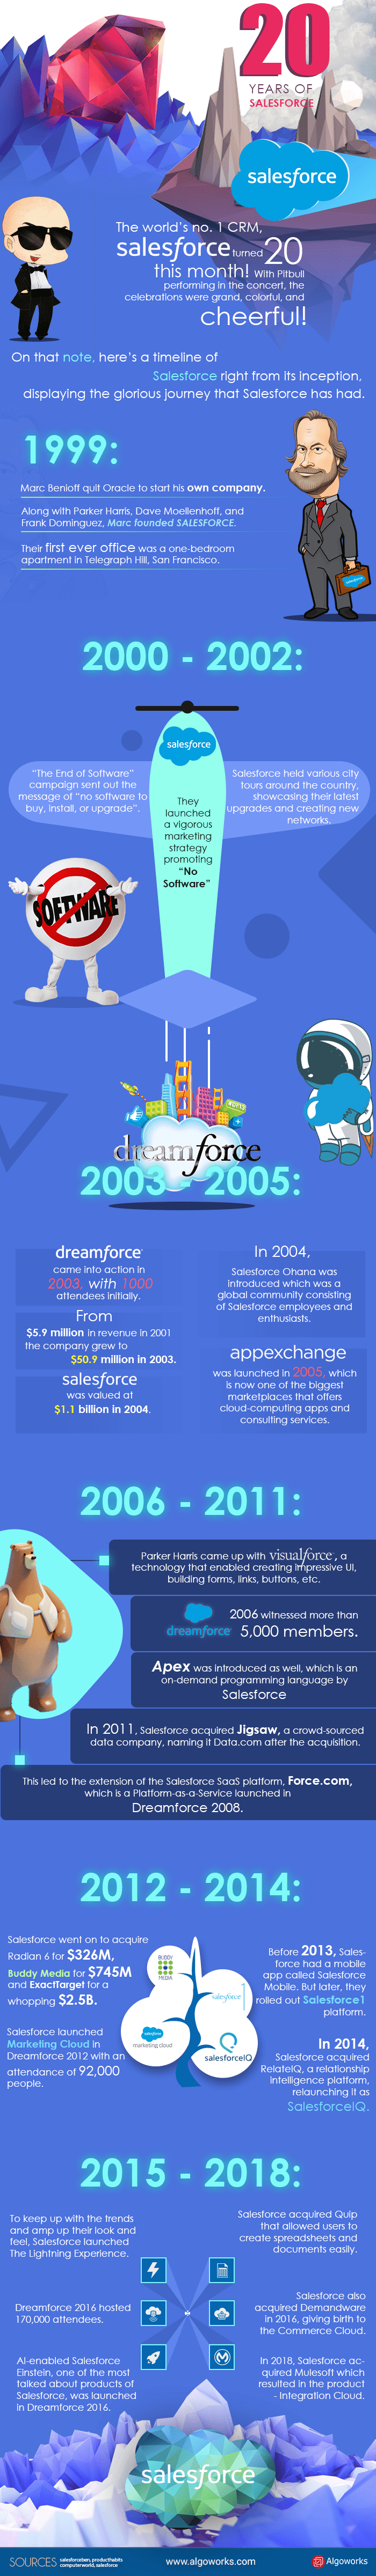 [Infographic] The Timeline: 20 Years of Salesforce | #SalesforceTurns20